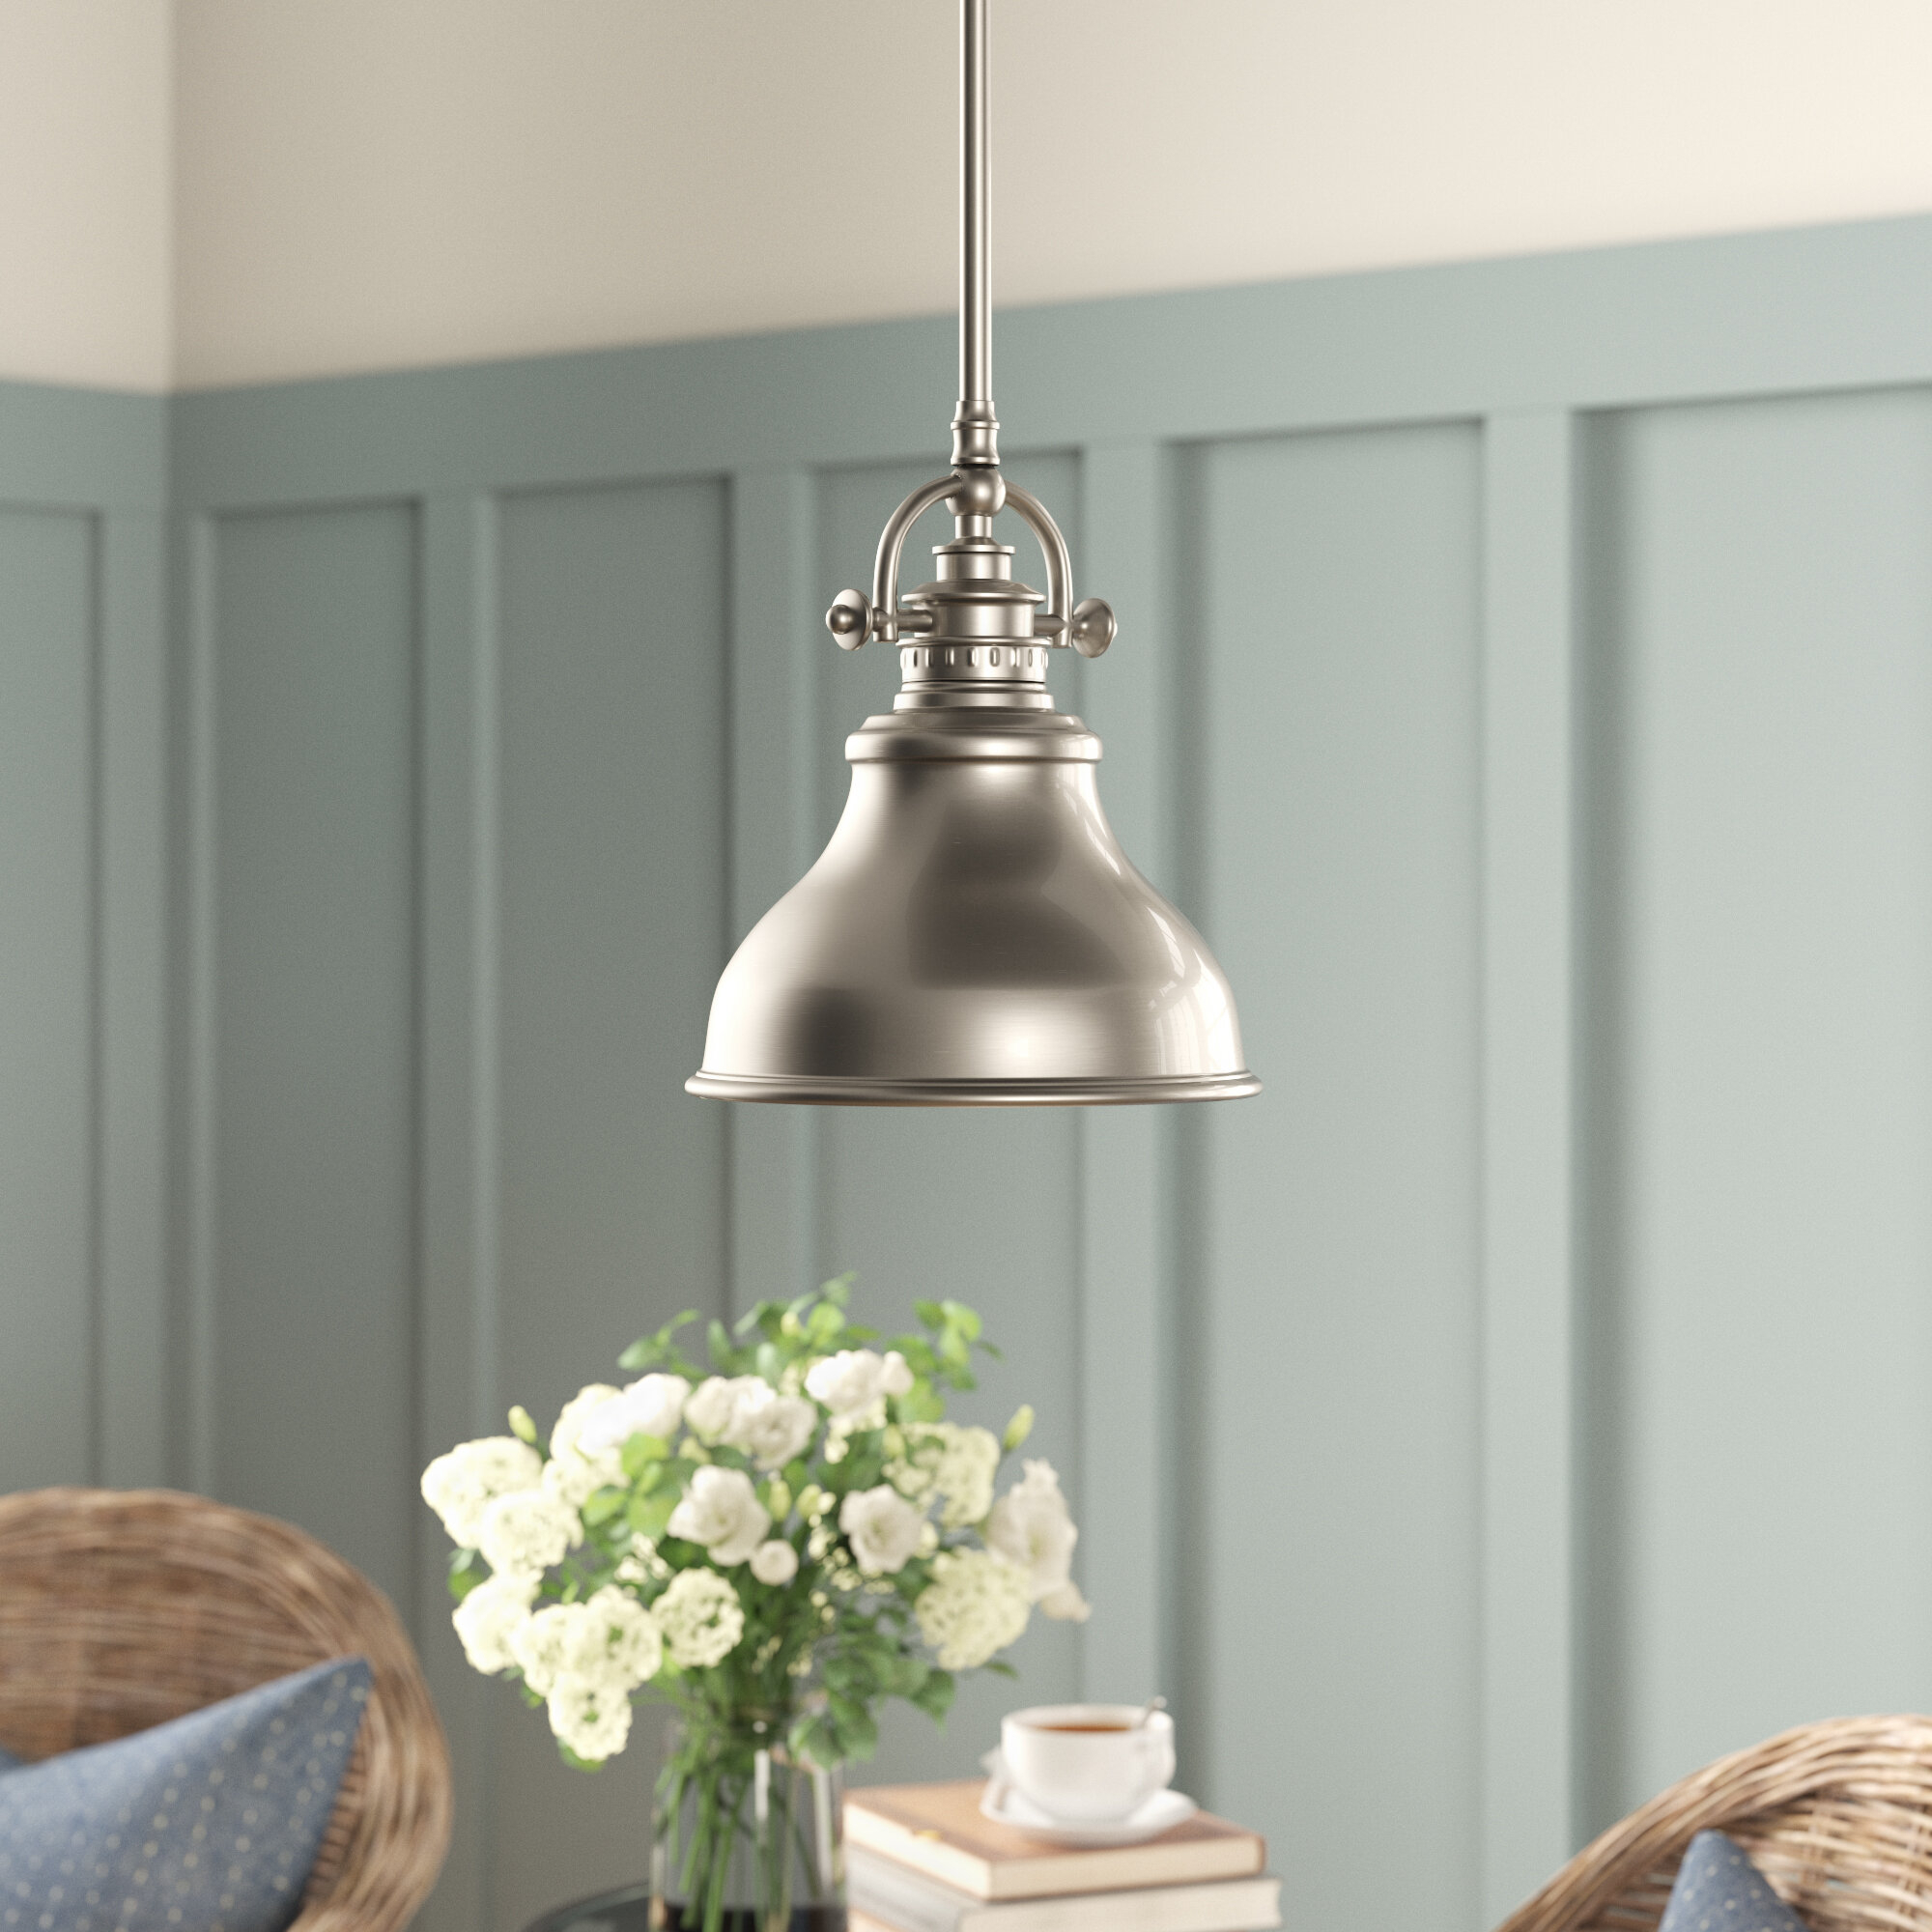 Beachcrest Home Mueller 1-Light Single Dome Pendant intended for Mueller 1-Light Single Dome Pendants (Image 6 of 30)